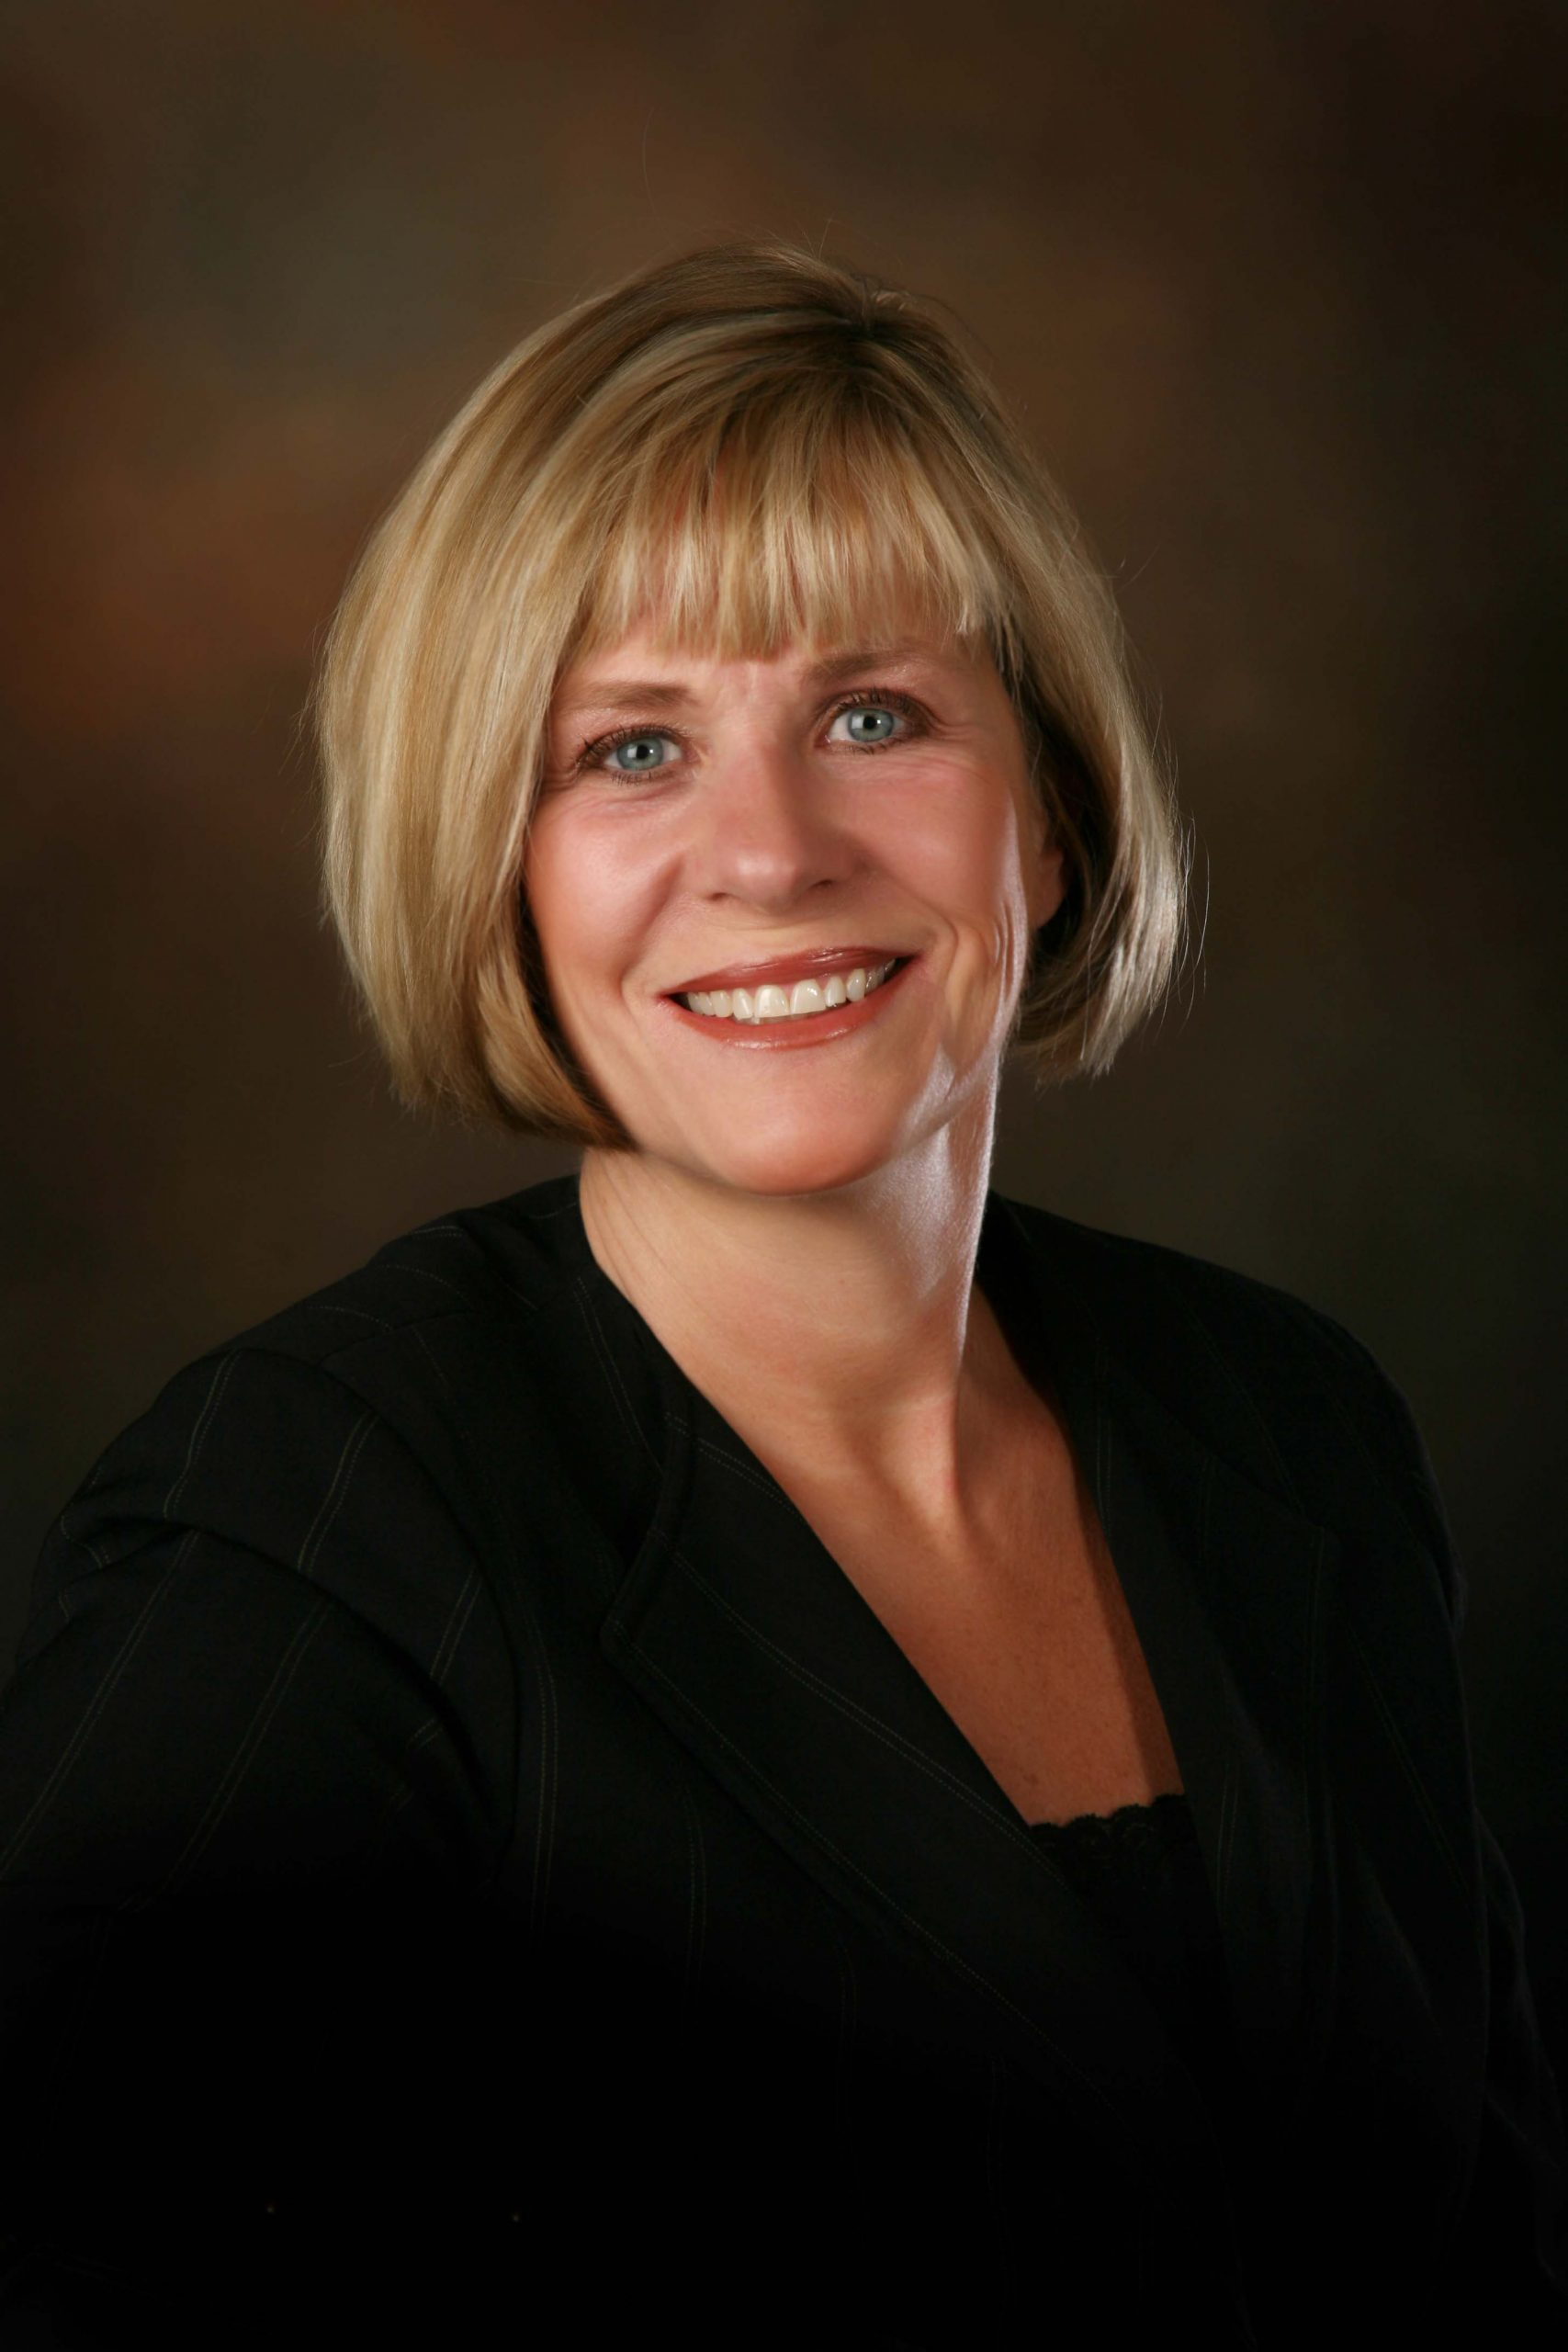 Trish Henrie, adjunct assistant professor in the U's Department of Educational Psychology, will lead a seminar in using positive psychology to deal with holiday stress.